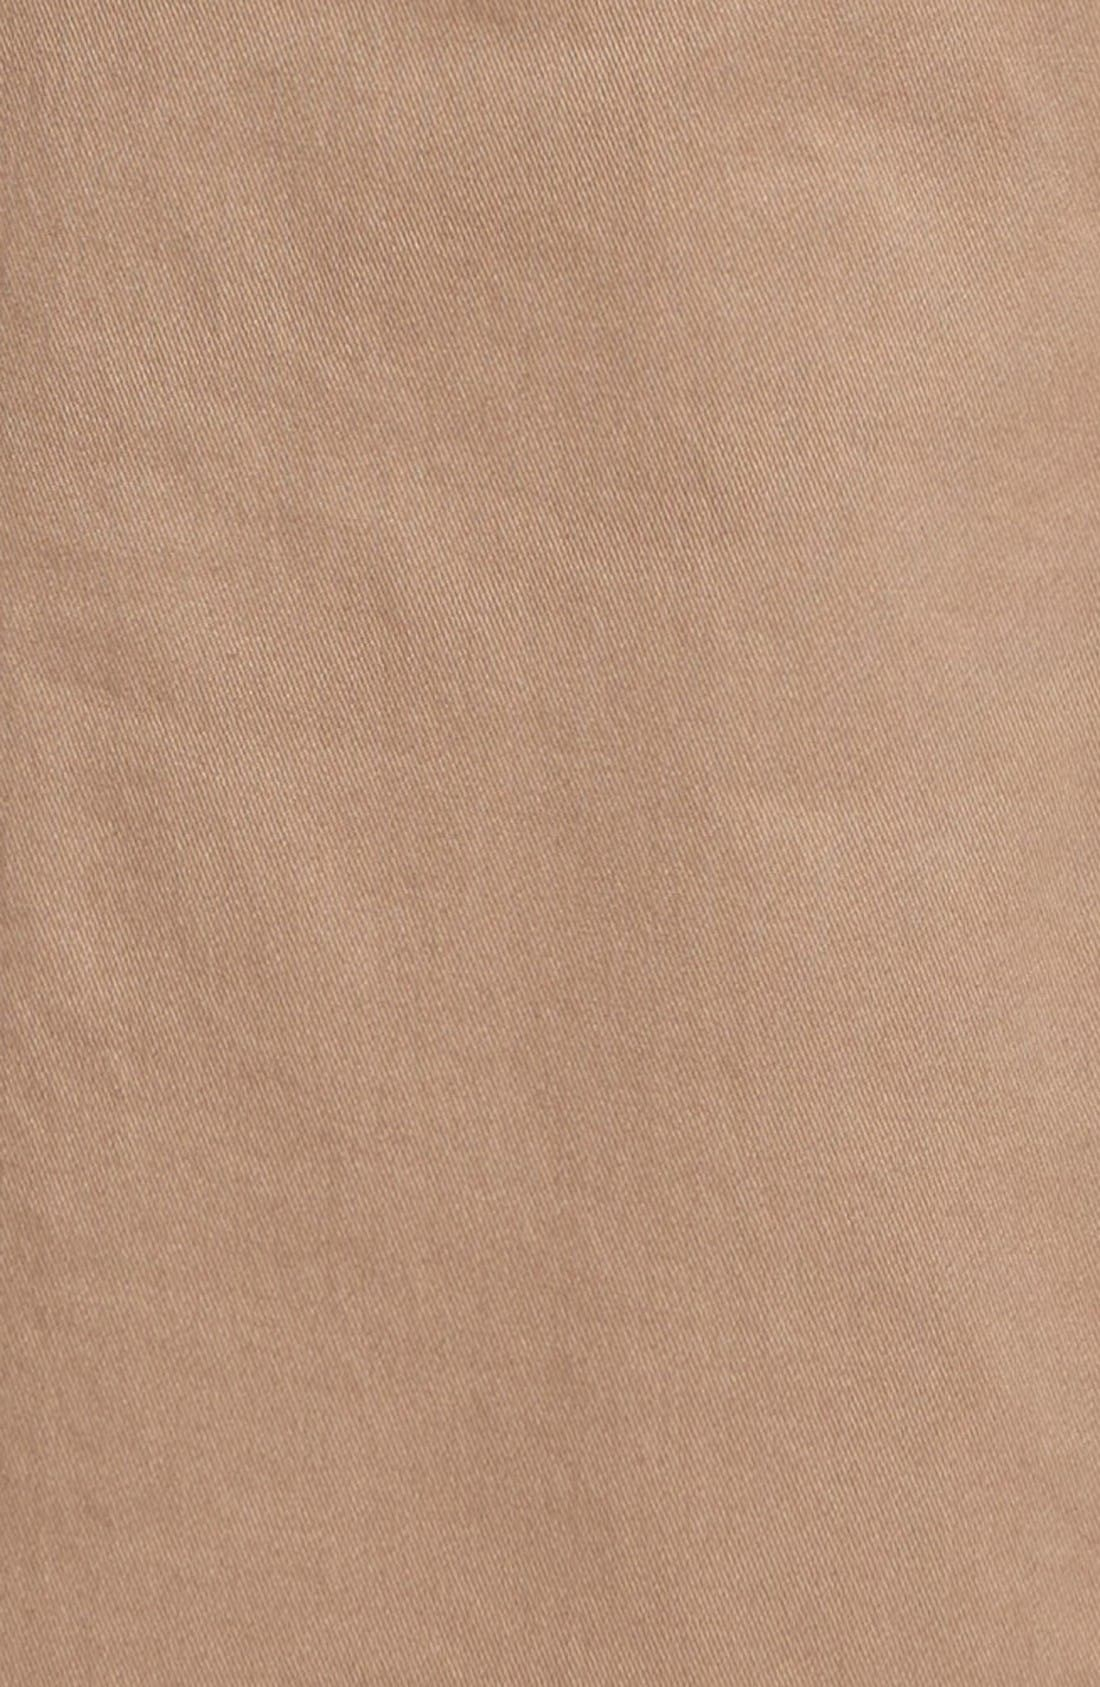 Slim Fit Stretch Chinos,                             Alternate thumbnail 3, color,                             Beige